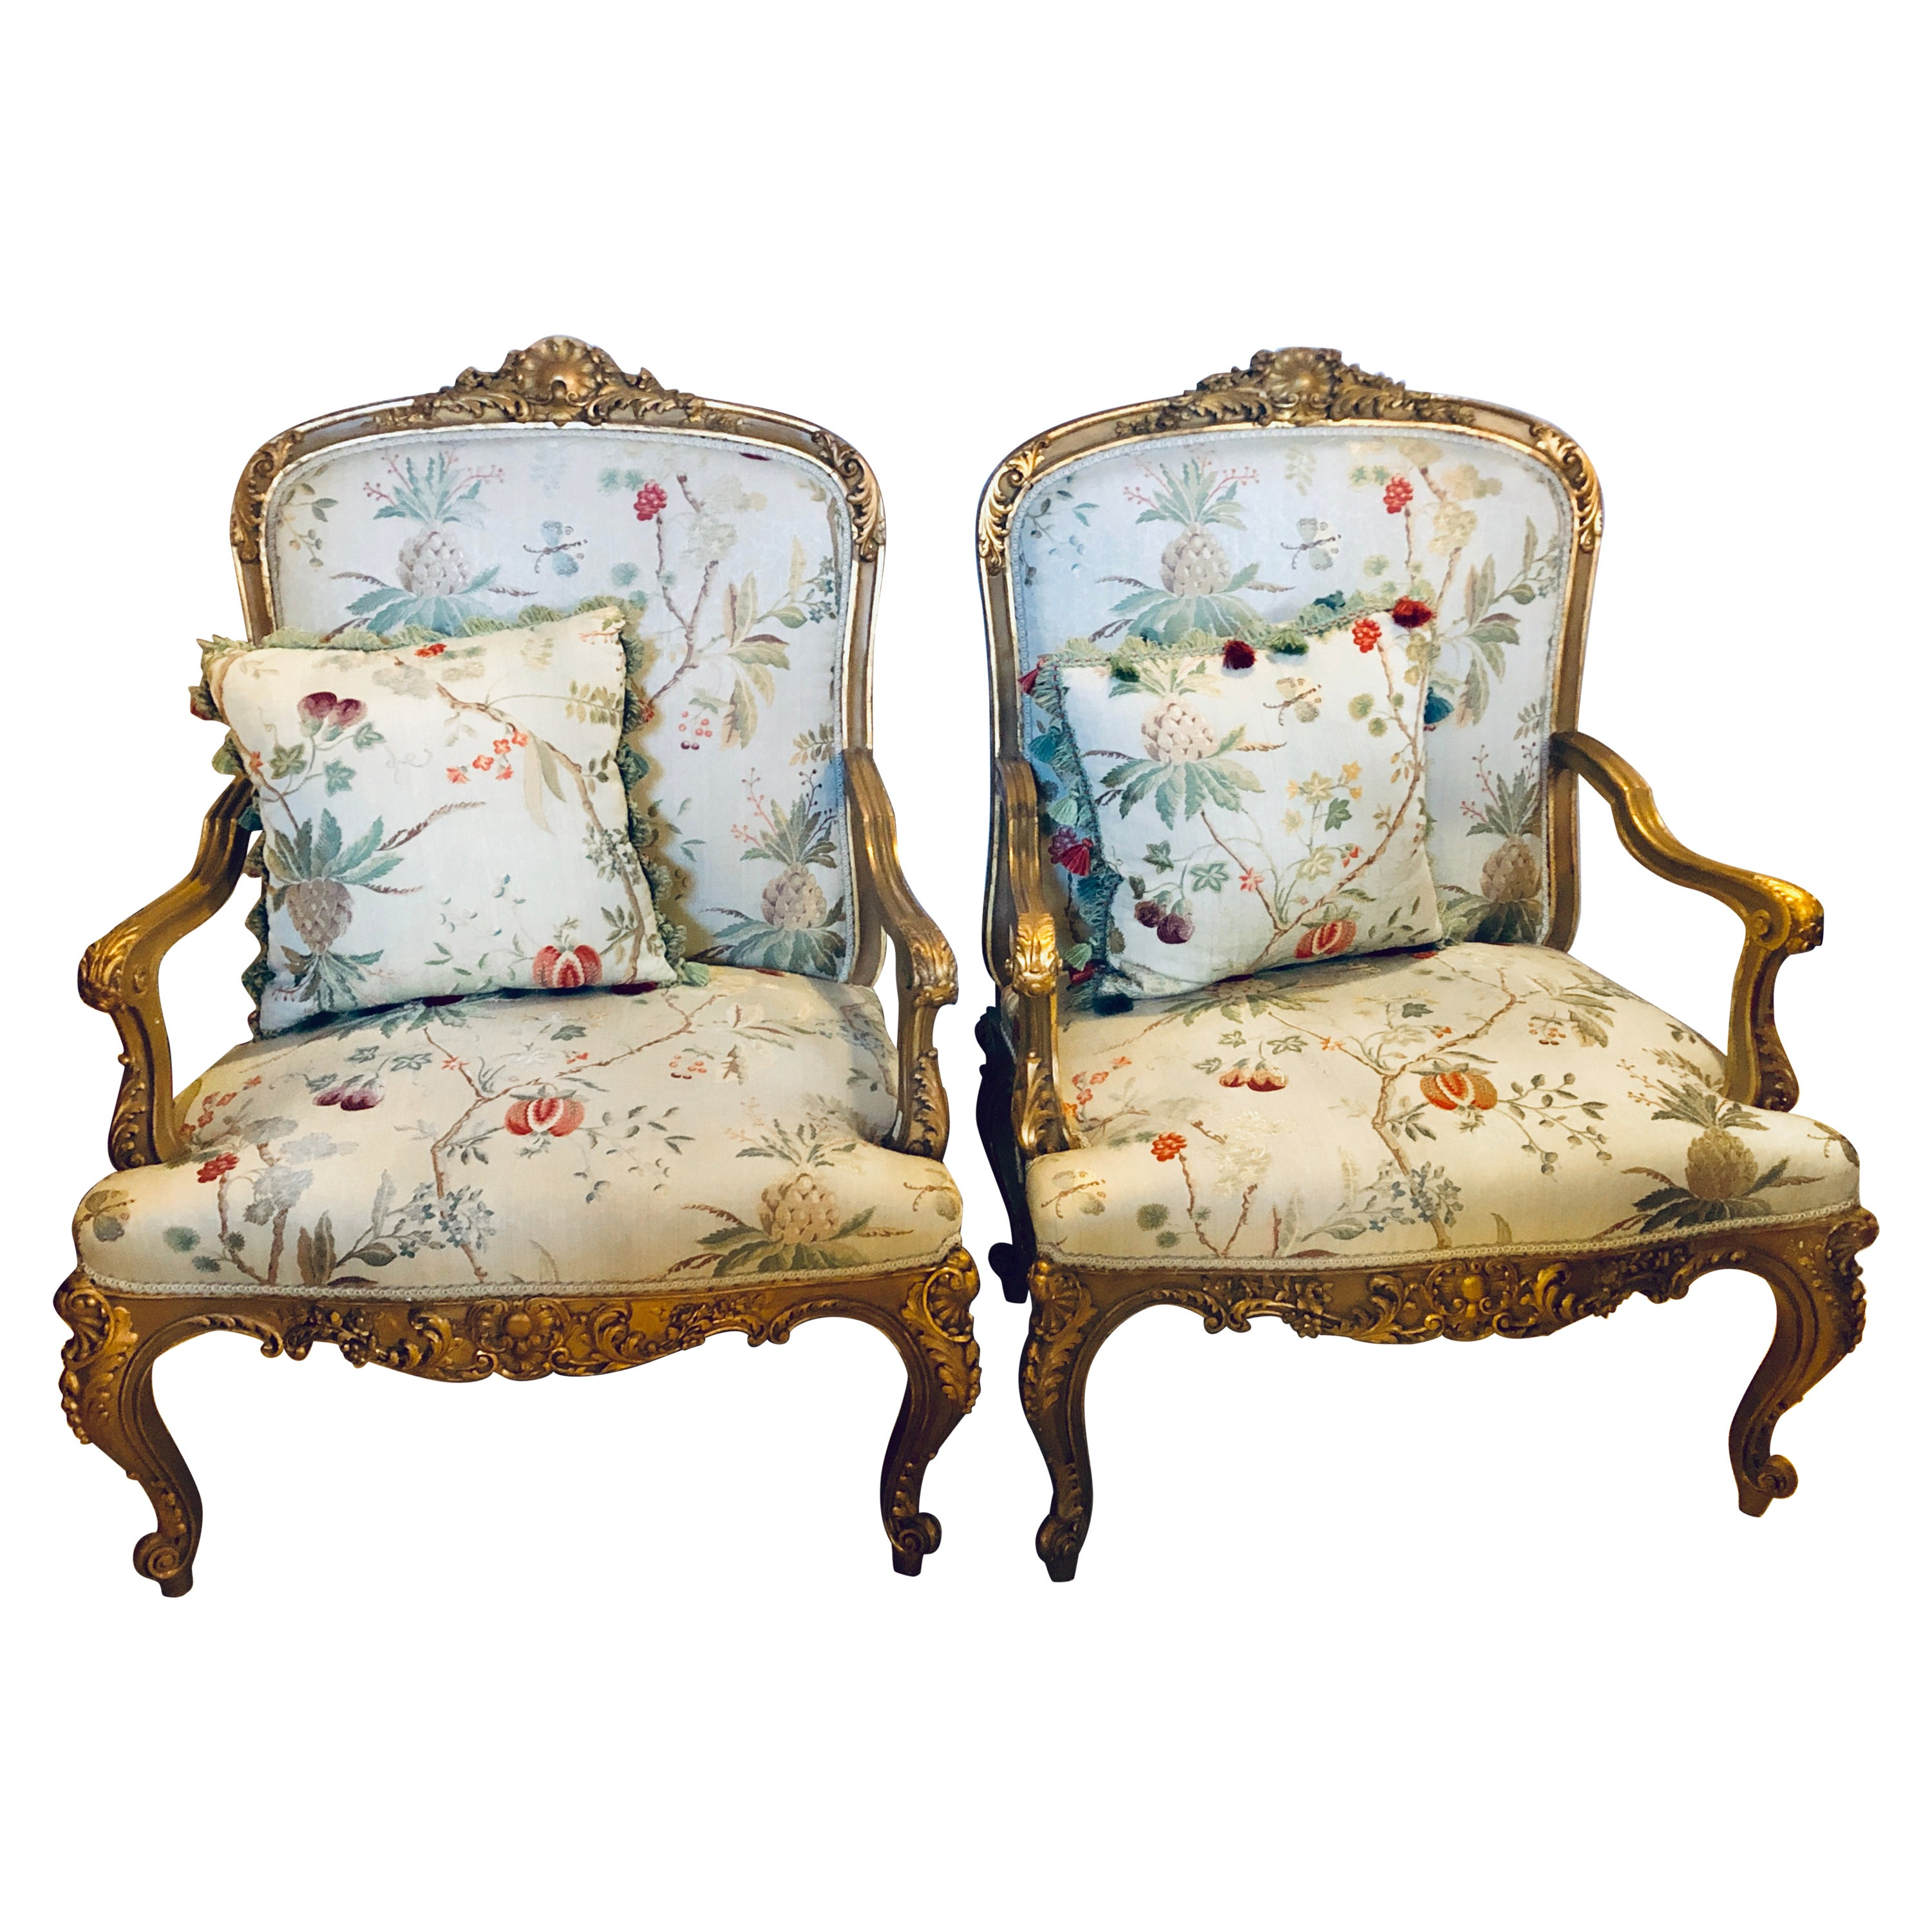 Fauteuils Bergeres Pair Gilt Wood Louis Xv Style Bergeres Or Fauteuils In Scalamandre Fabric Jansen